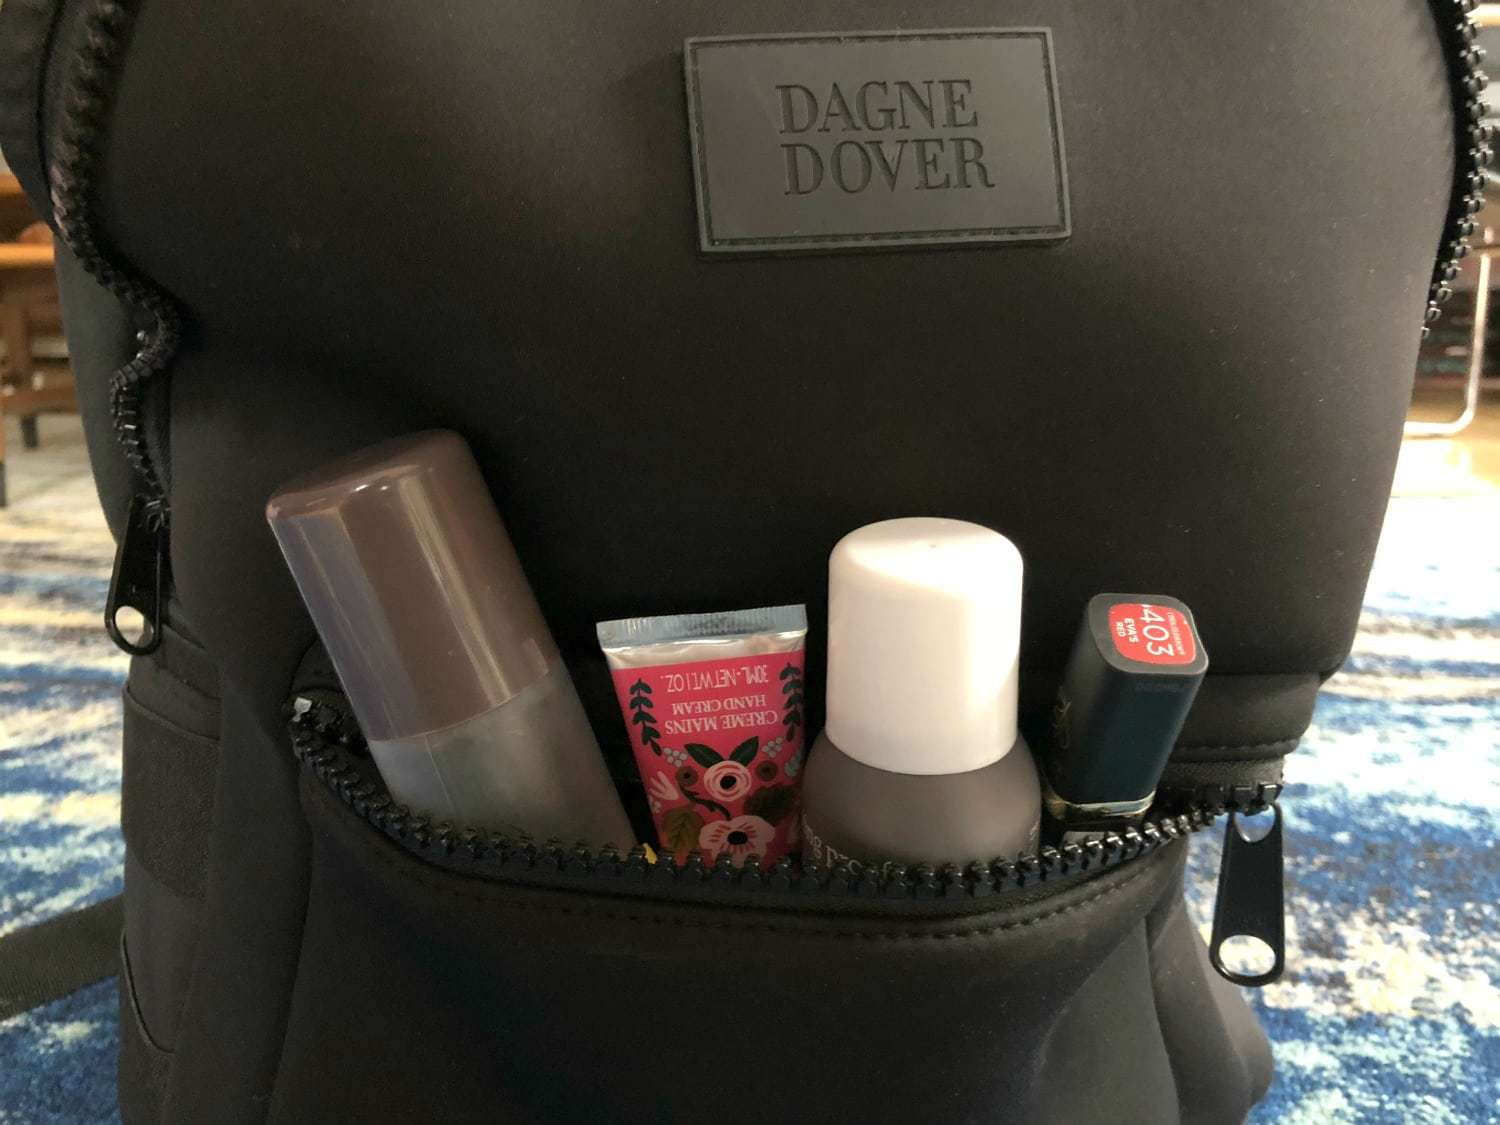 what can you fit in a dagne dover dakota backpack